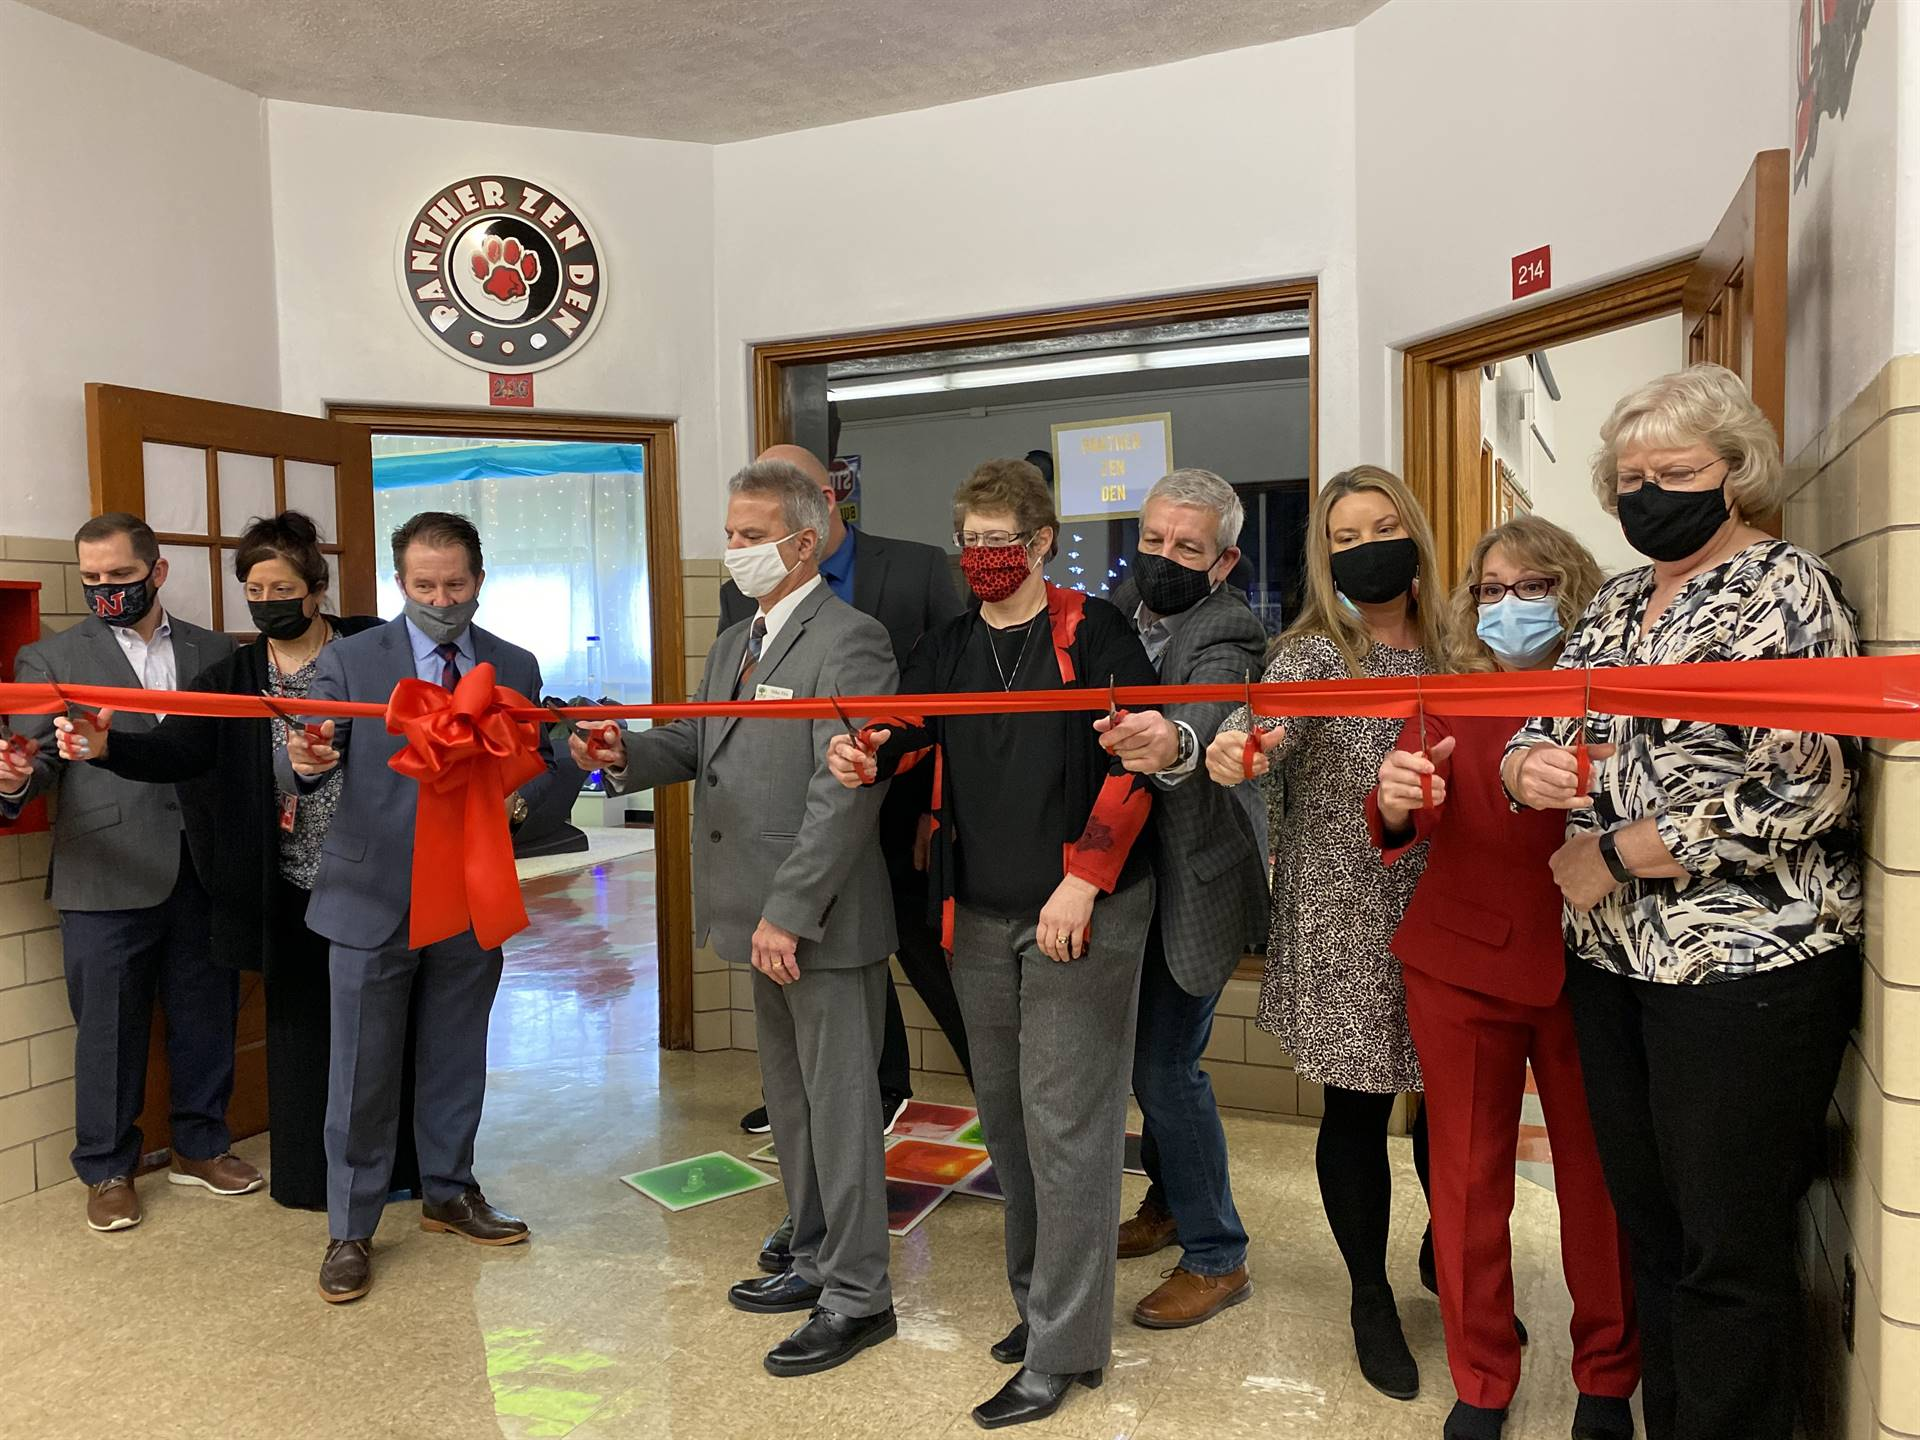 Ribbon Cutting Ceremony - Panther Zen Den (Calm Room)